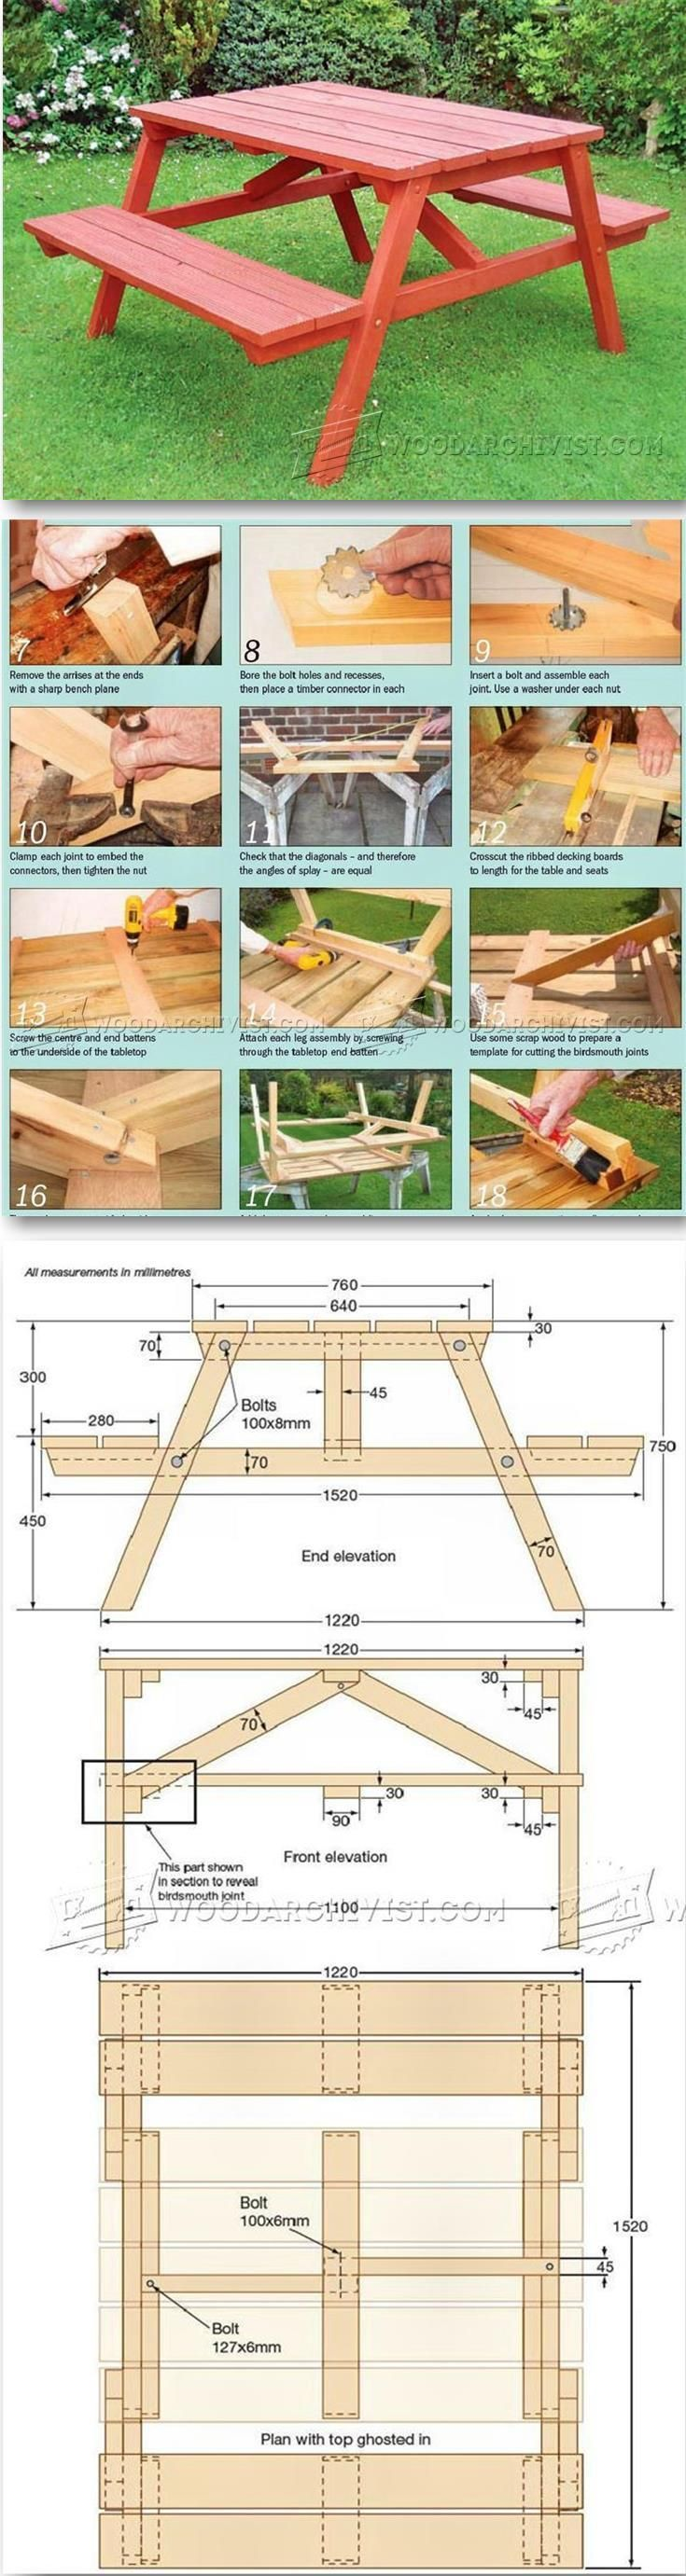 Garden Picnic Table Plans - Outdoor Furniture Plans & Projects | http://WoodArchivist.com